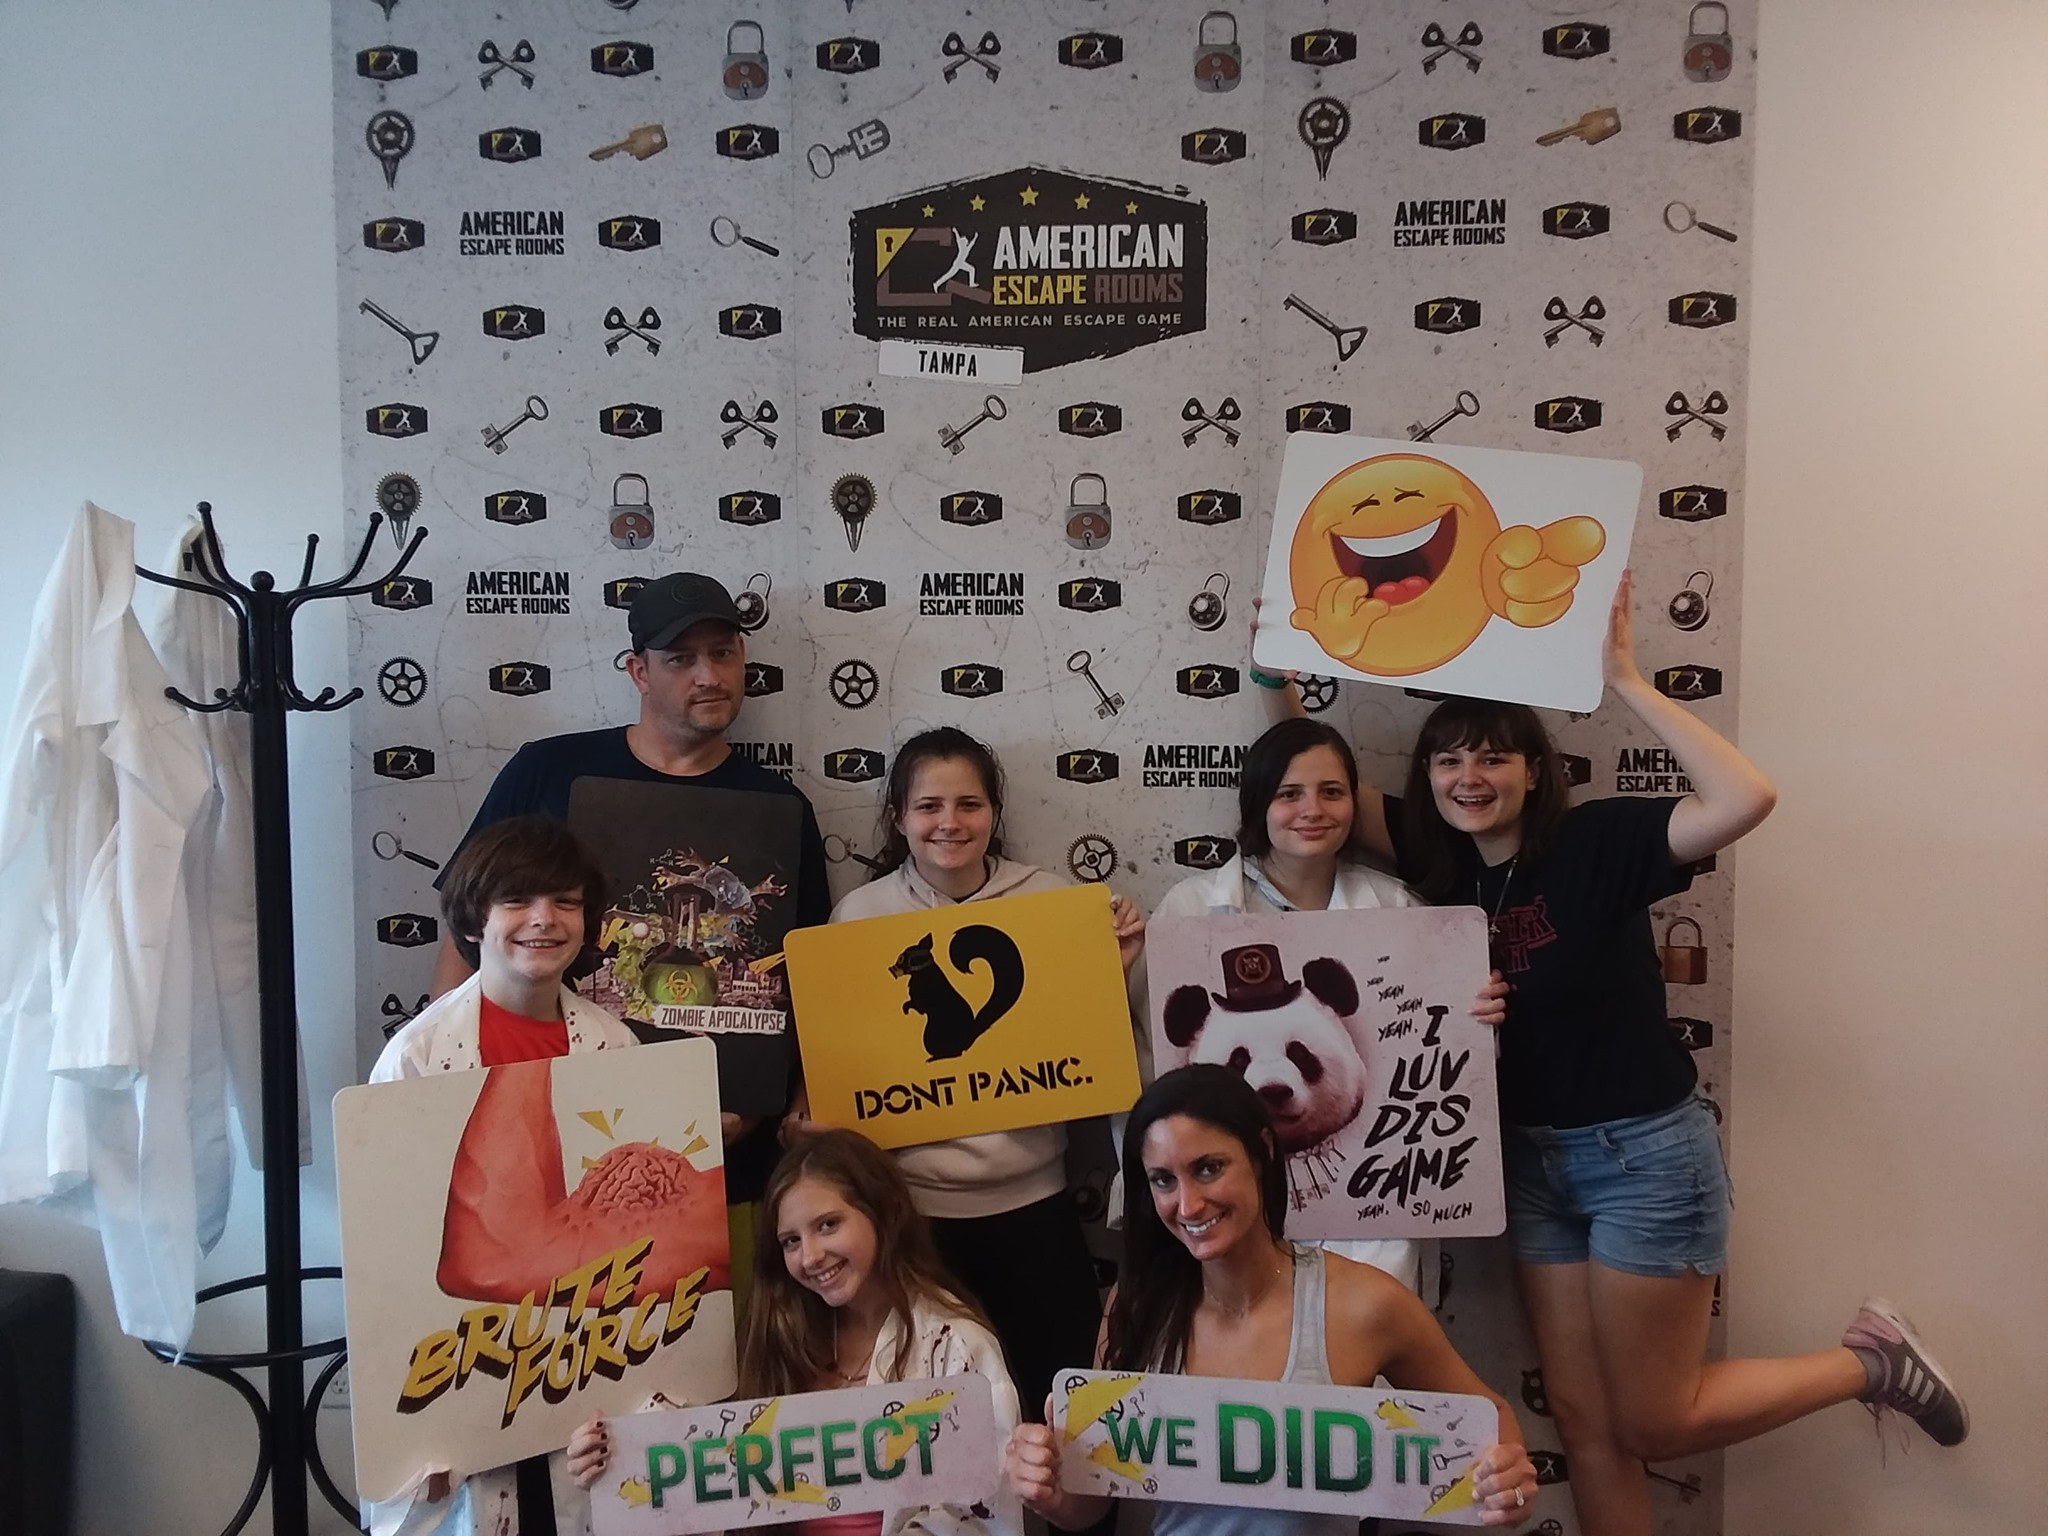 Xtreme Xcapists played the Zombie Apocalypse - Tampa and finished the game with 11 minutes 2 seconds left. Congratulations! Well done!